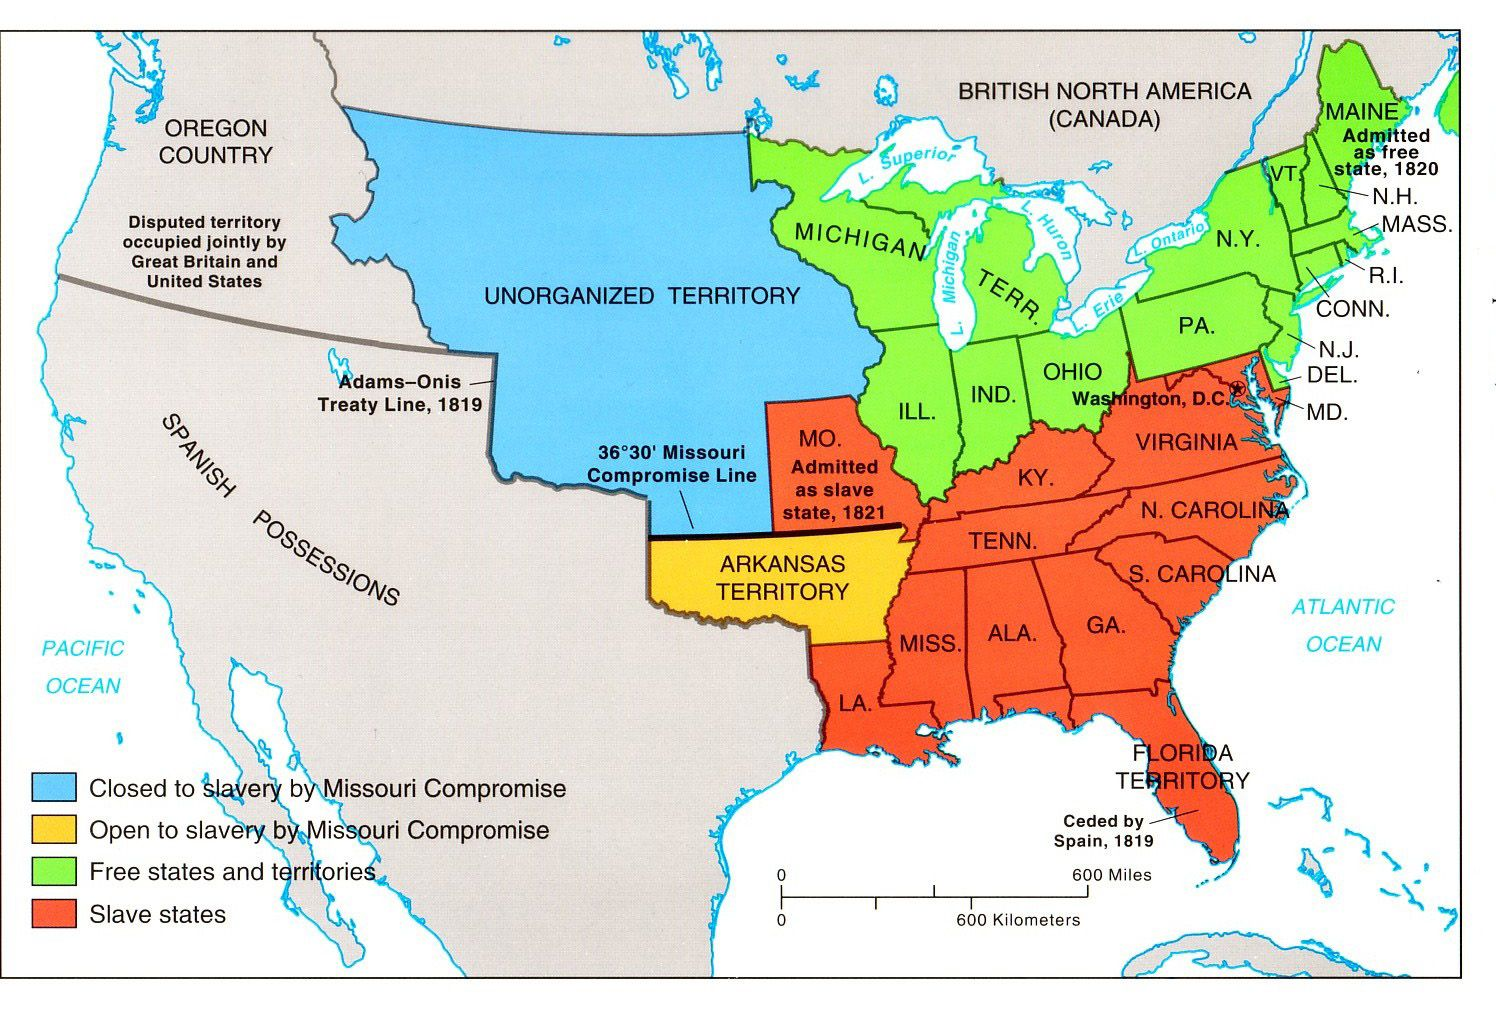 best images about social studies missouri compromise on 17 best images about social studies missouri compromise 1820 dom trail civil wars and the act